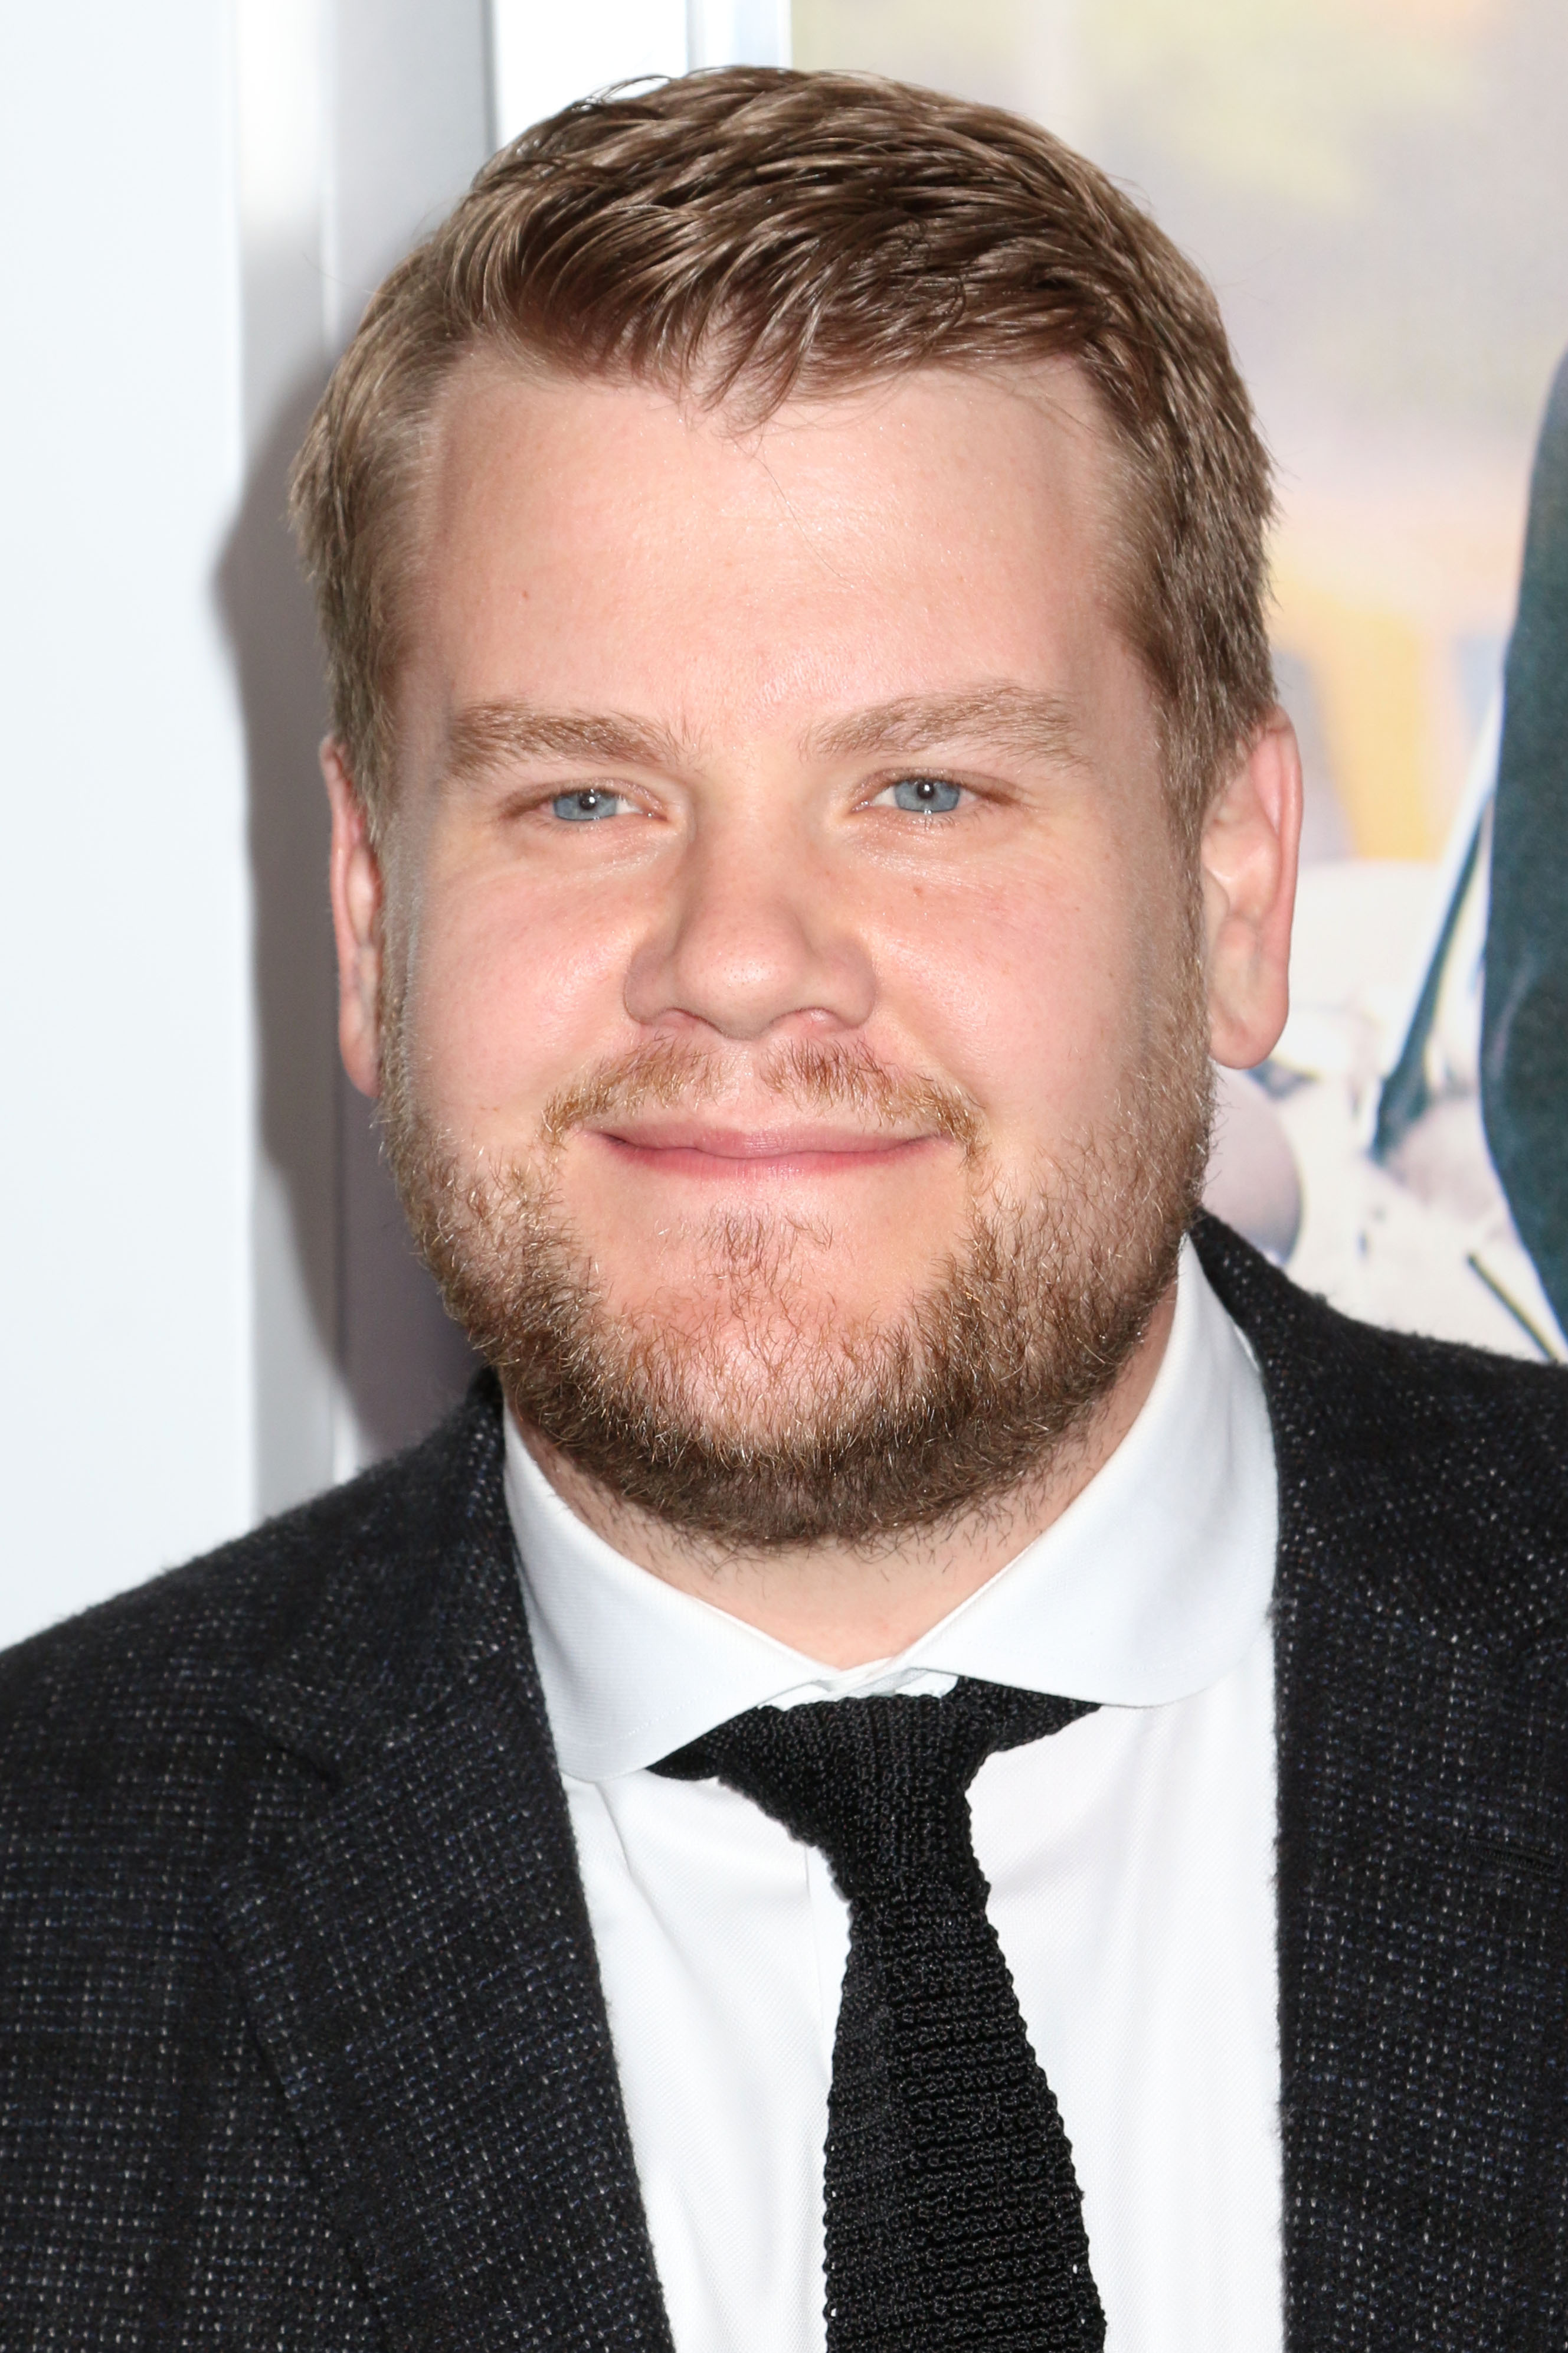 james corden - photo #37